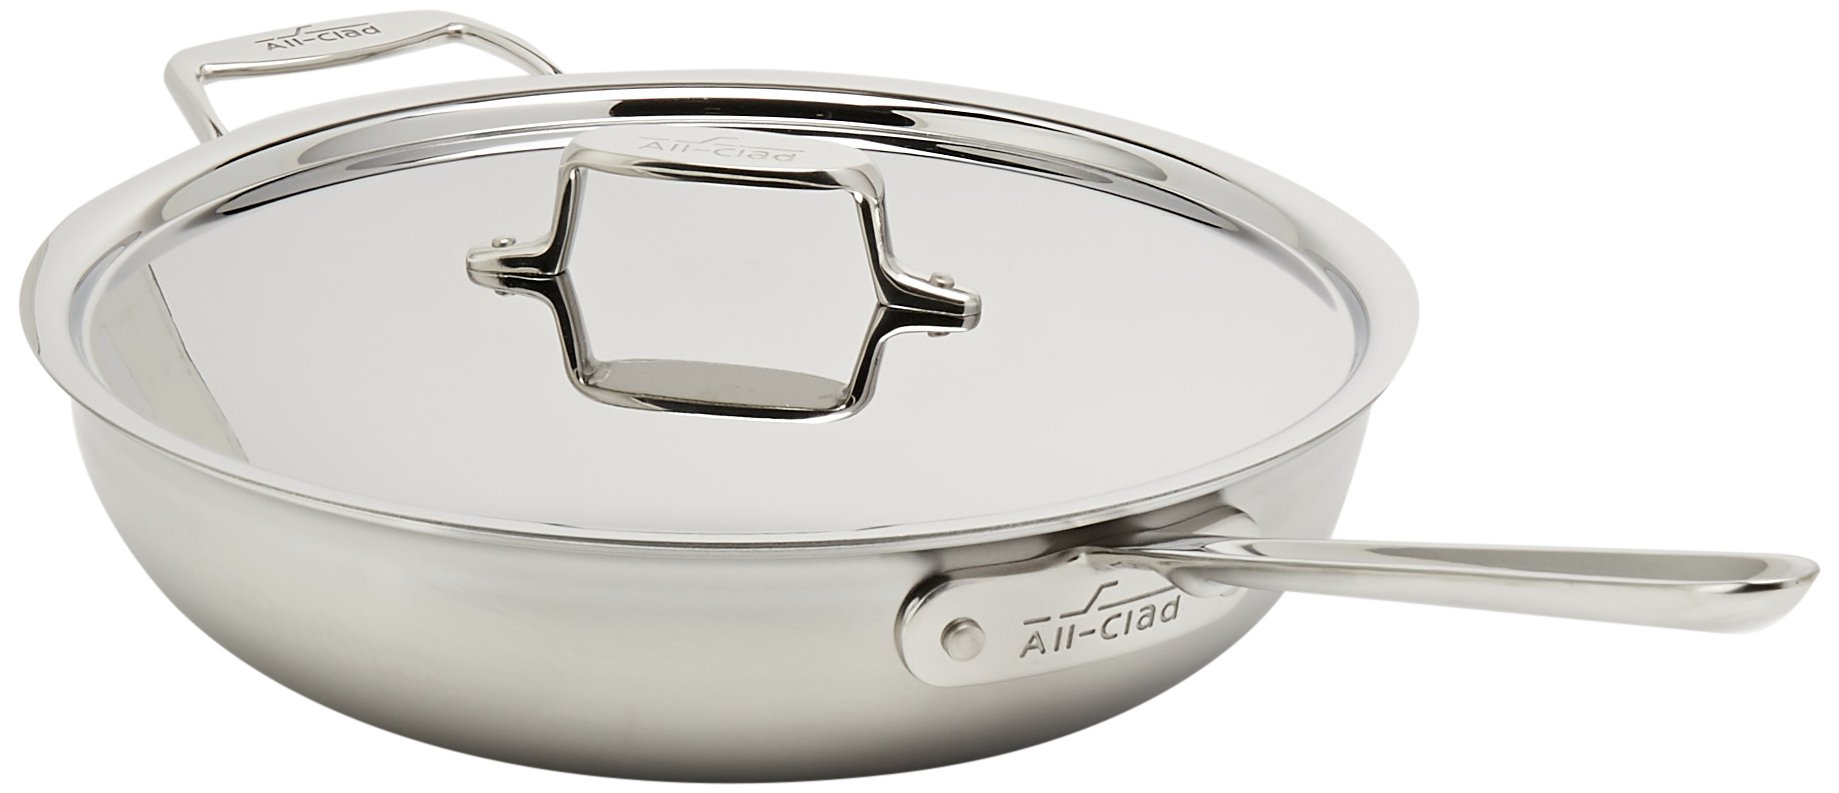 All-Clad BD55404 D5 Brushed 18/10 Stainless Steel 5-Ply Dishwasher Safe Week Night Pan Cookware, 4-Quart, Silver by All-Clad (Image #2)